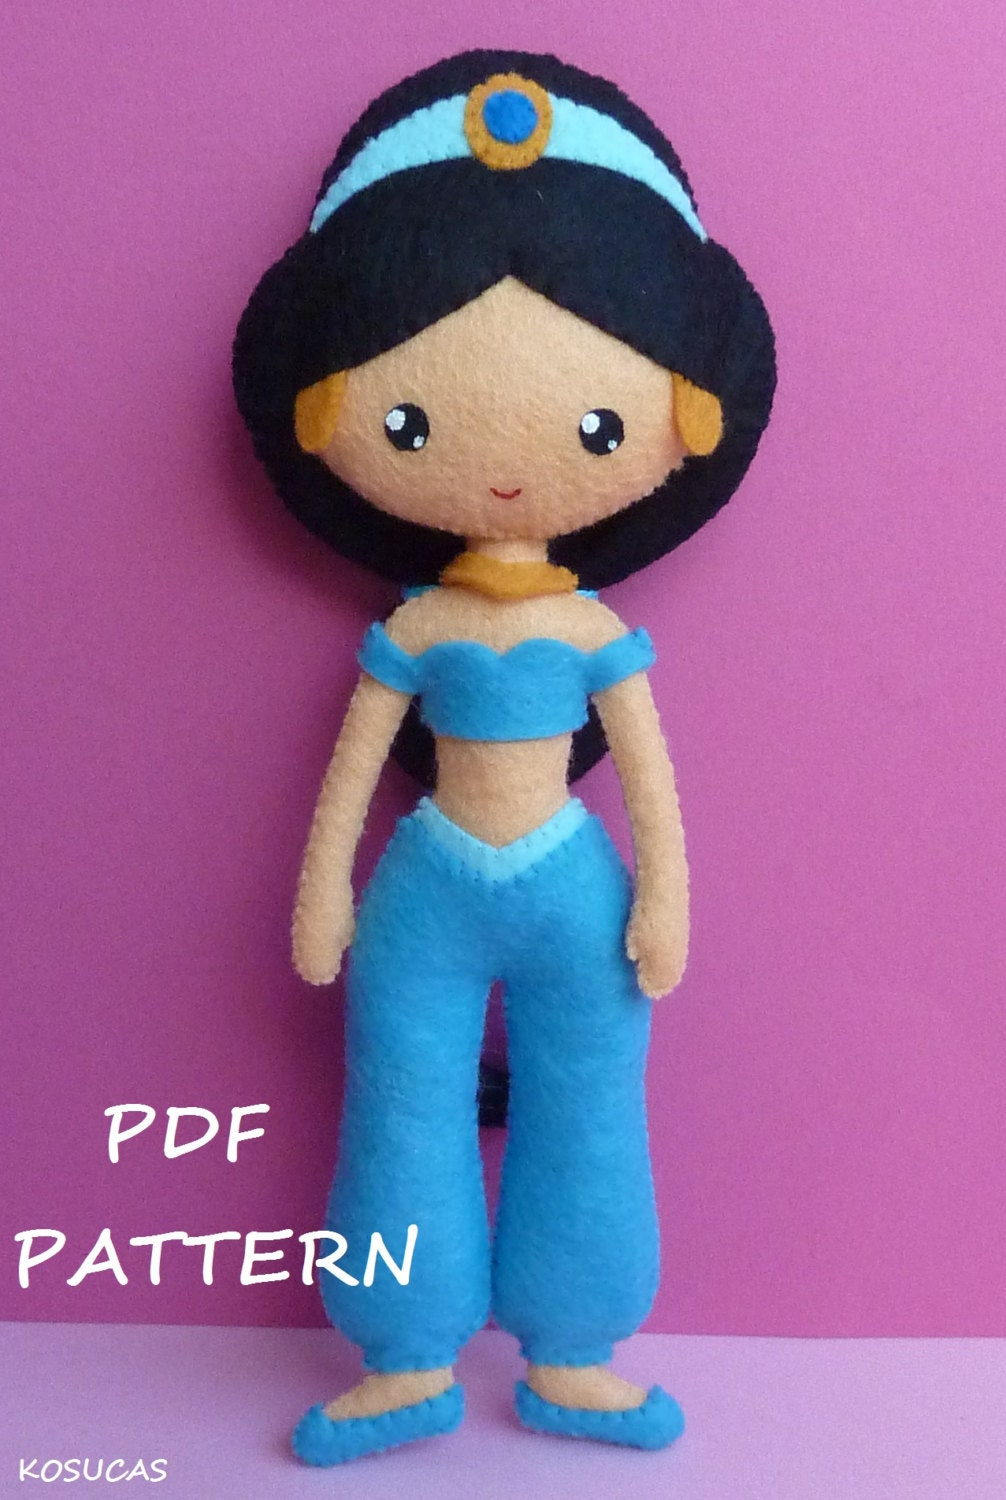 Pdf Sewing Pattern To Make Felt Doll Inspired In Jasmine  # Muebles Jasmine